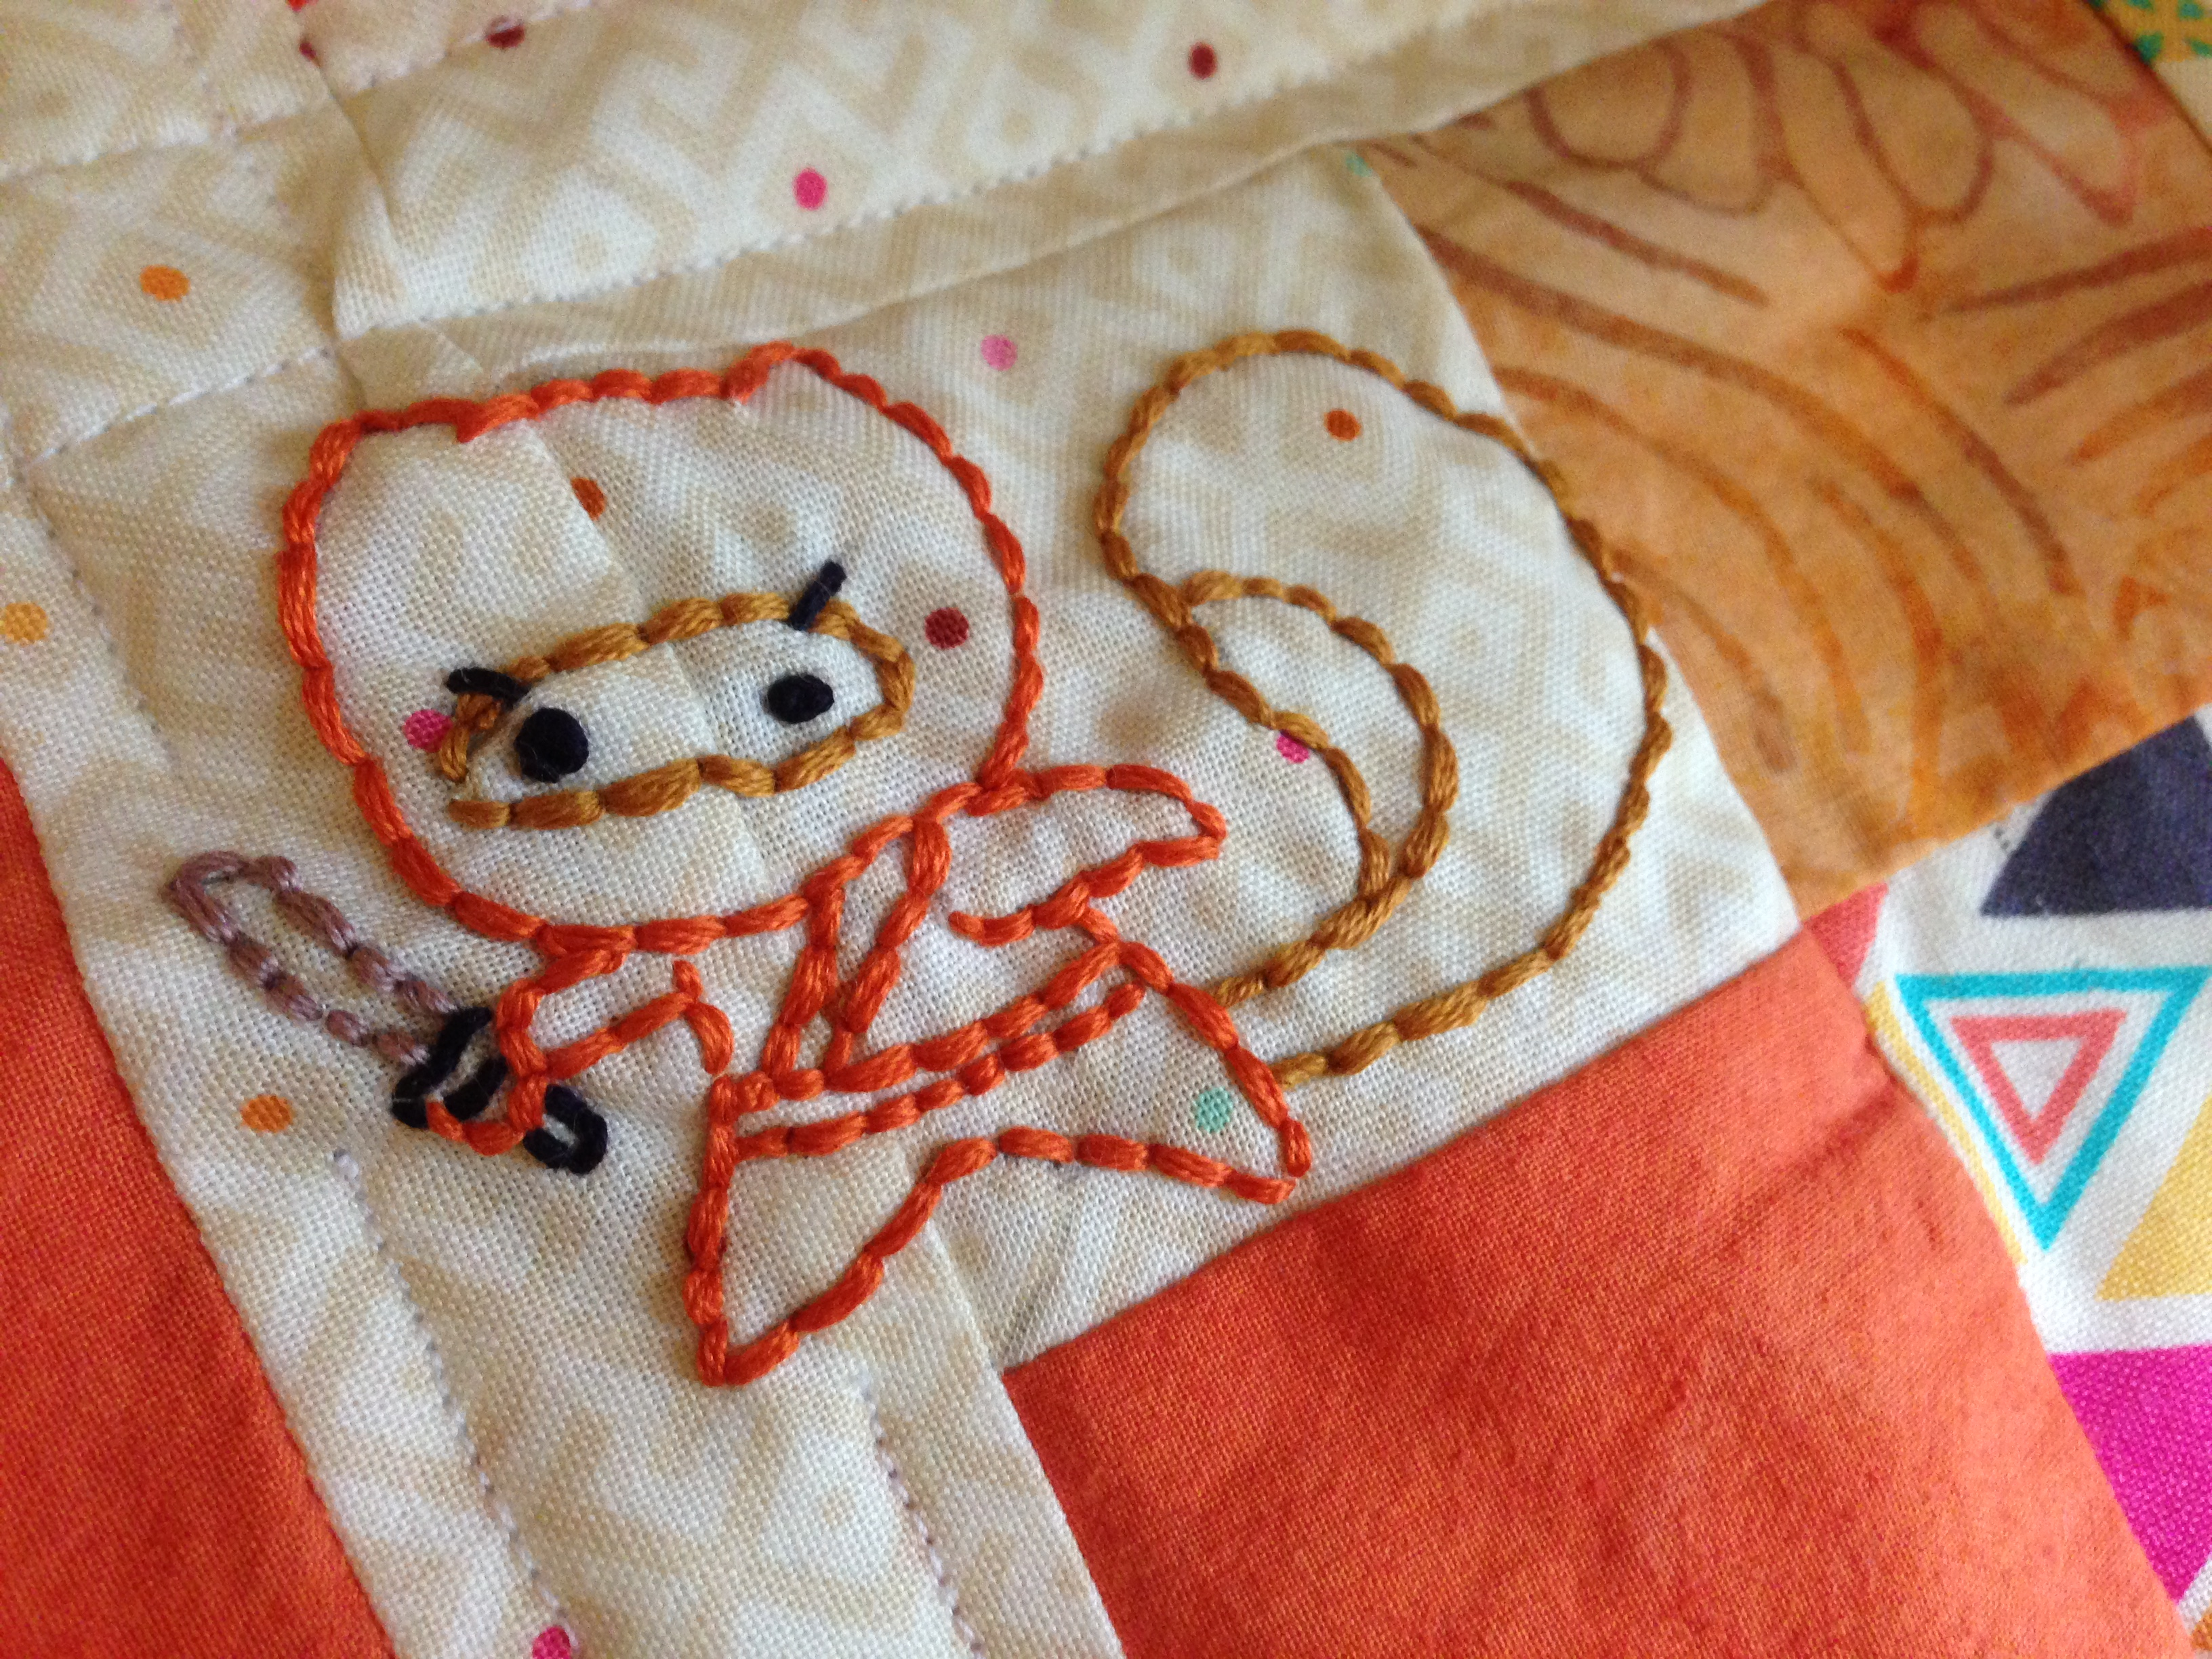 Secret Squirrel Protect Your Nuts Patch: Secret Squirrel Mini Quilt